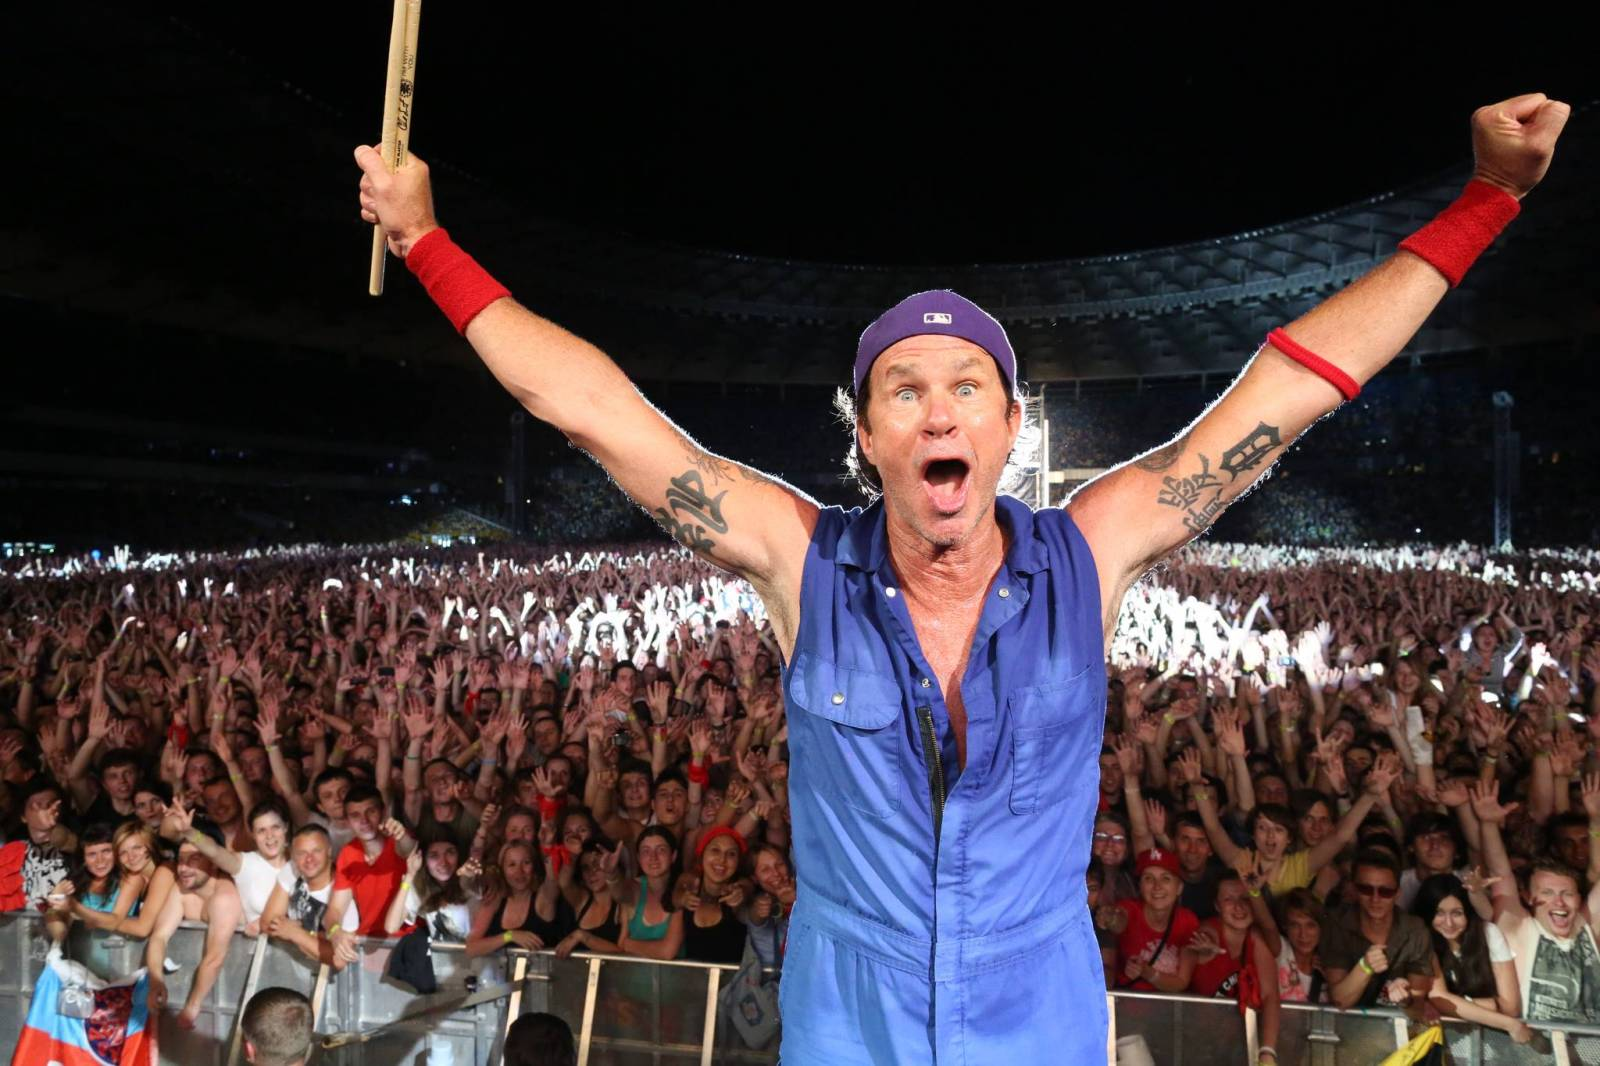 Vedlejšáky Red Hot Chili Peppers | Chad Smith